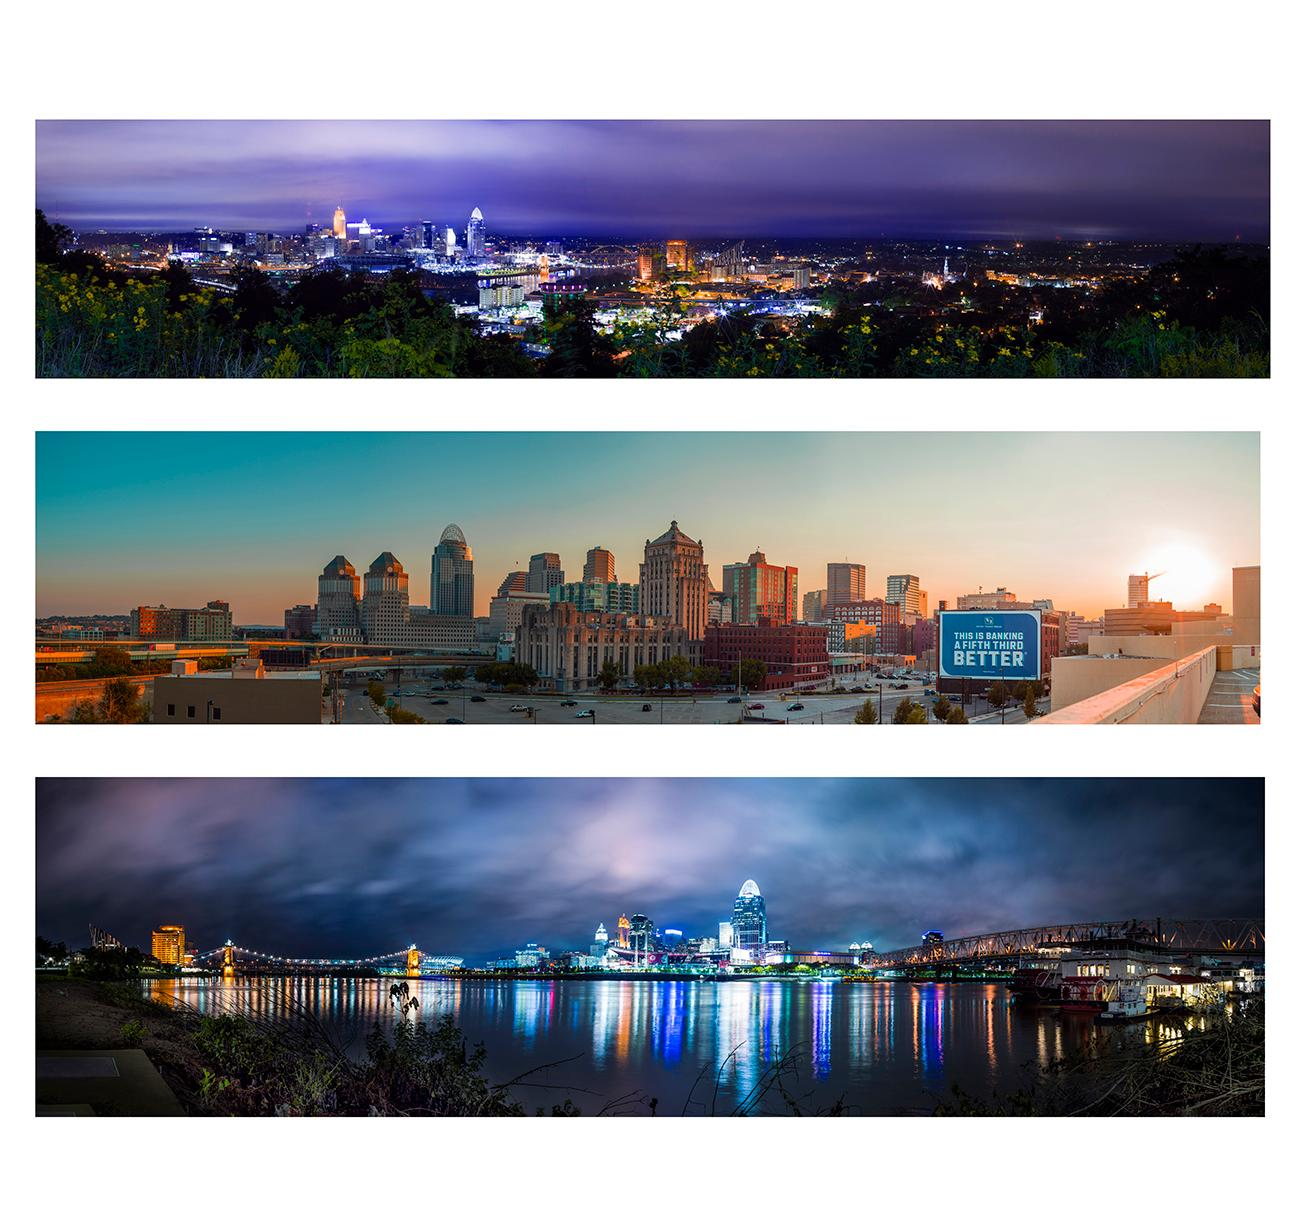 Panoramic photos of Cincinnati by Chris Ashwell from 2018. View the whole image by going to the Public Library downtown and seeing the Panorama of Progress exhibit. The exhibit runs until October 31. ADDRESS: 800 Vine Street (45202) / Image courtesy of the Public Library of Cincinnati // Published: 10.4.18